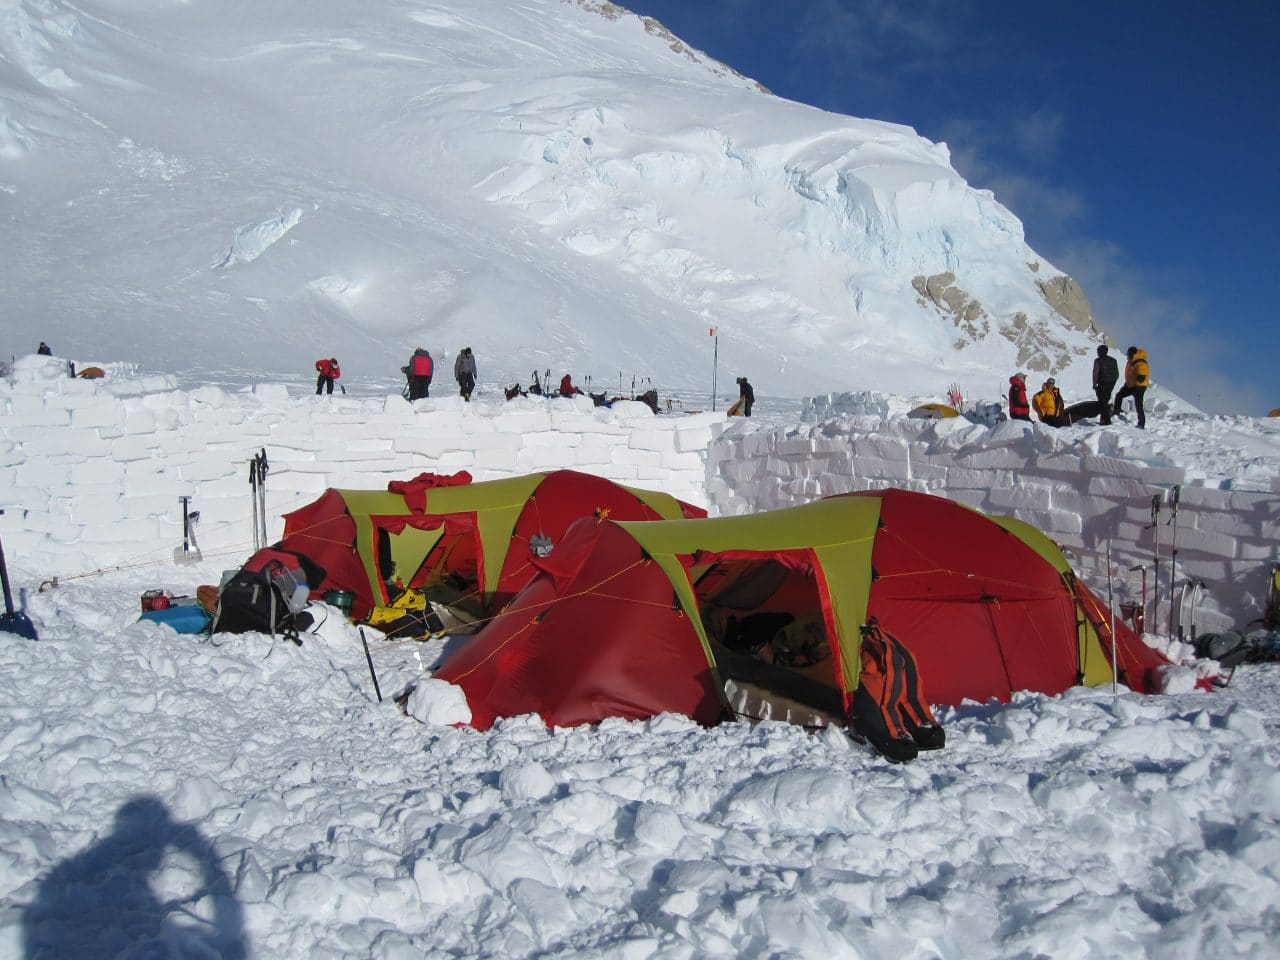 Helyum_Xavier-Carrard_Guide-de-montagne_Expedition_Alaska_Denali_Camp-4_Mur-de-neige